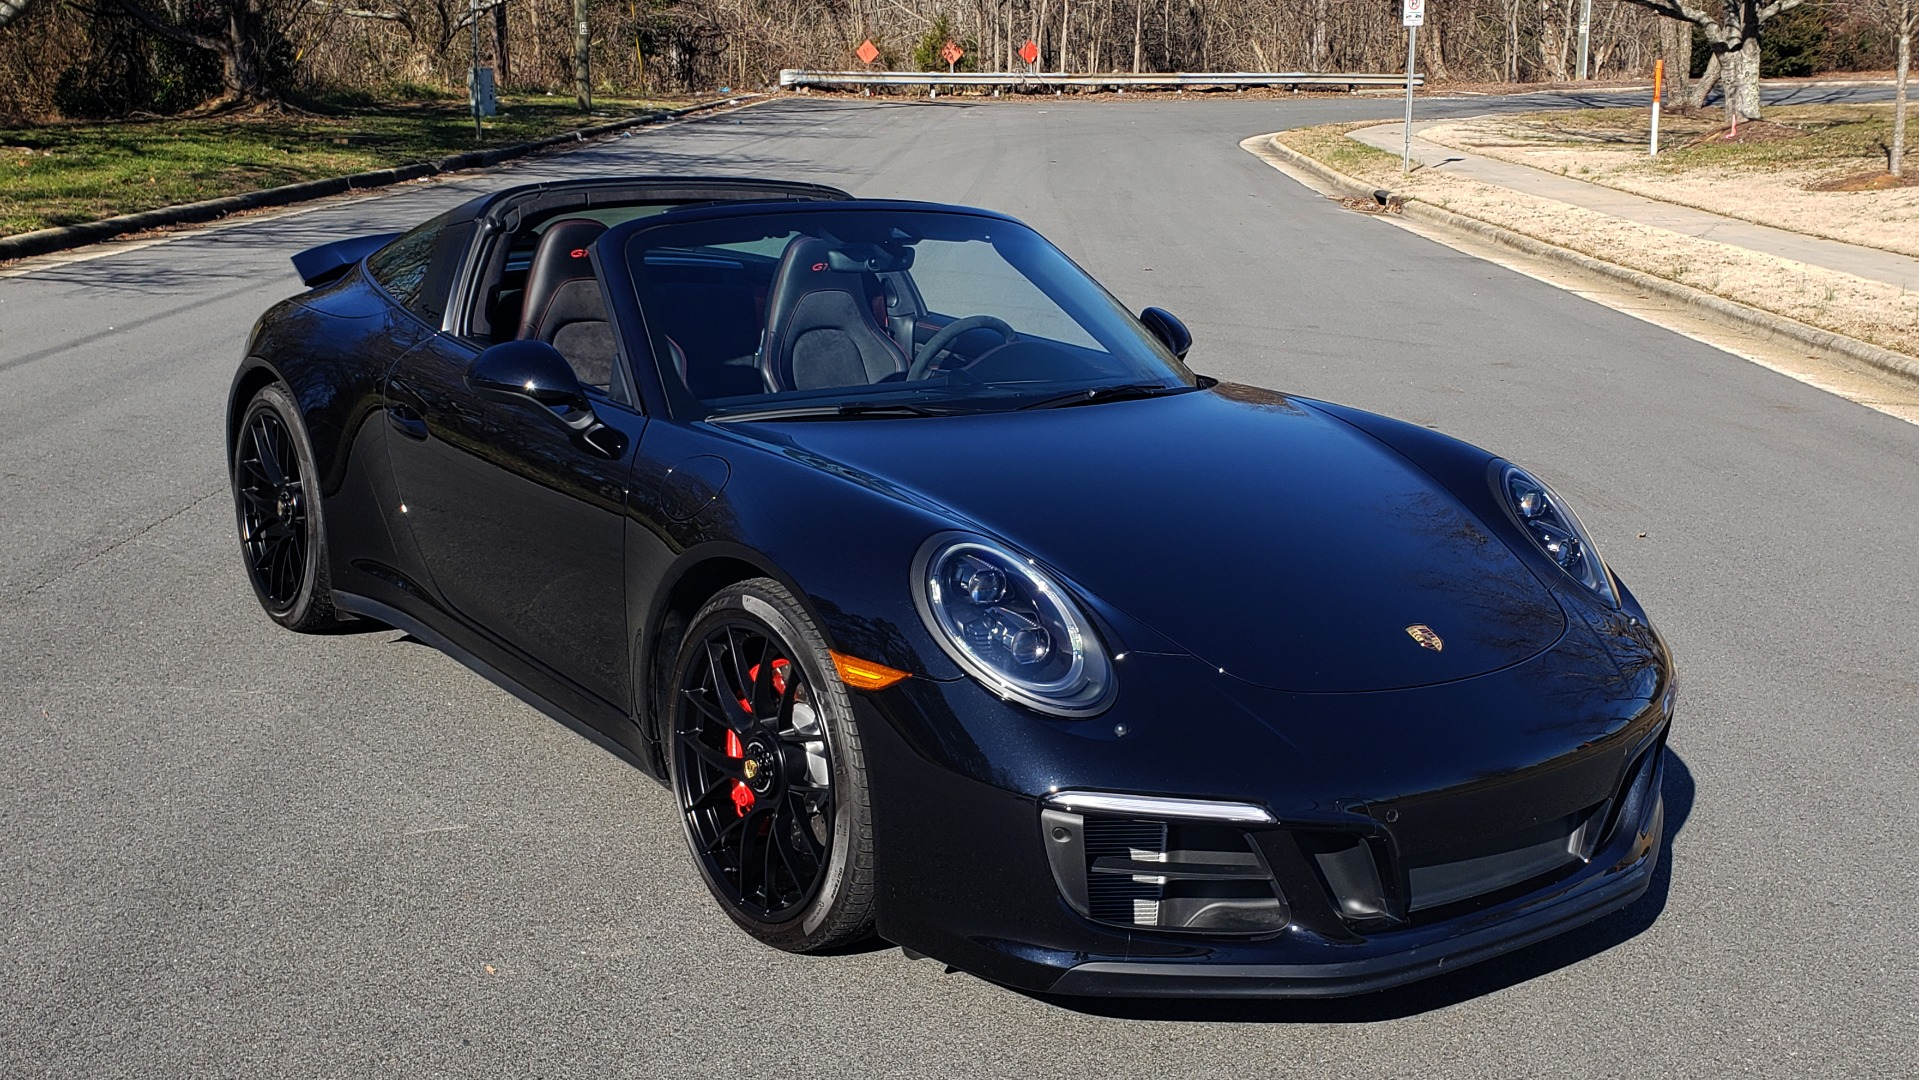 Used 2017 Porsche 911 TARGA 4 GTS / NAV / 7-SPD MANUAL / BURMESTER / REARVIEW for sale Sold at Formula Imports in Charlotte NC 28227 3